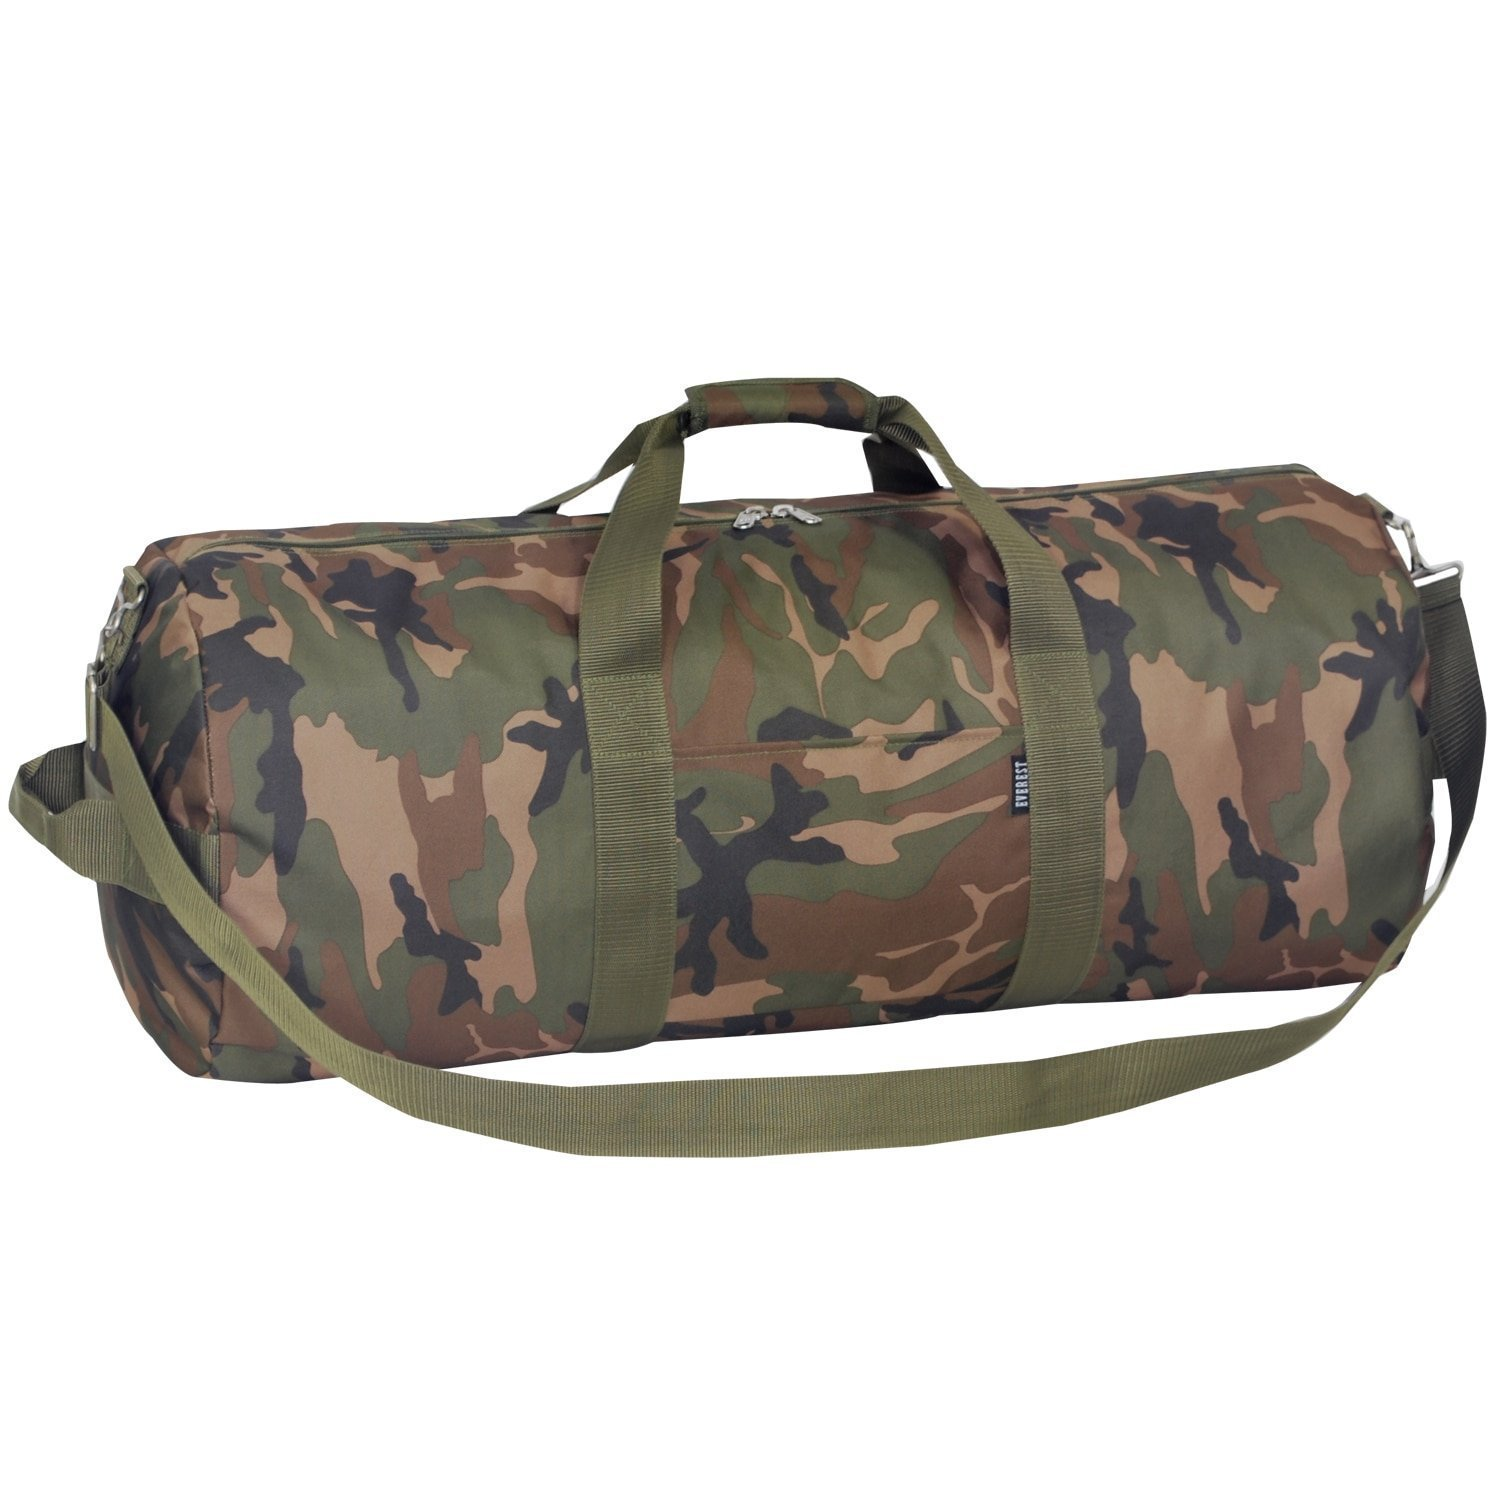 Boys Green Camouflage Theme Carry Oversize Duffle Bag, Kids Travel Luggage, Handle, Army, Lightweight, Hunting Military Pattern Duffel, Fashionable, Shoulder Strap Duffel, Camo